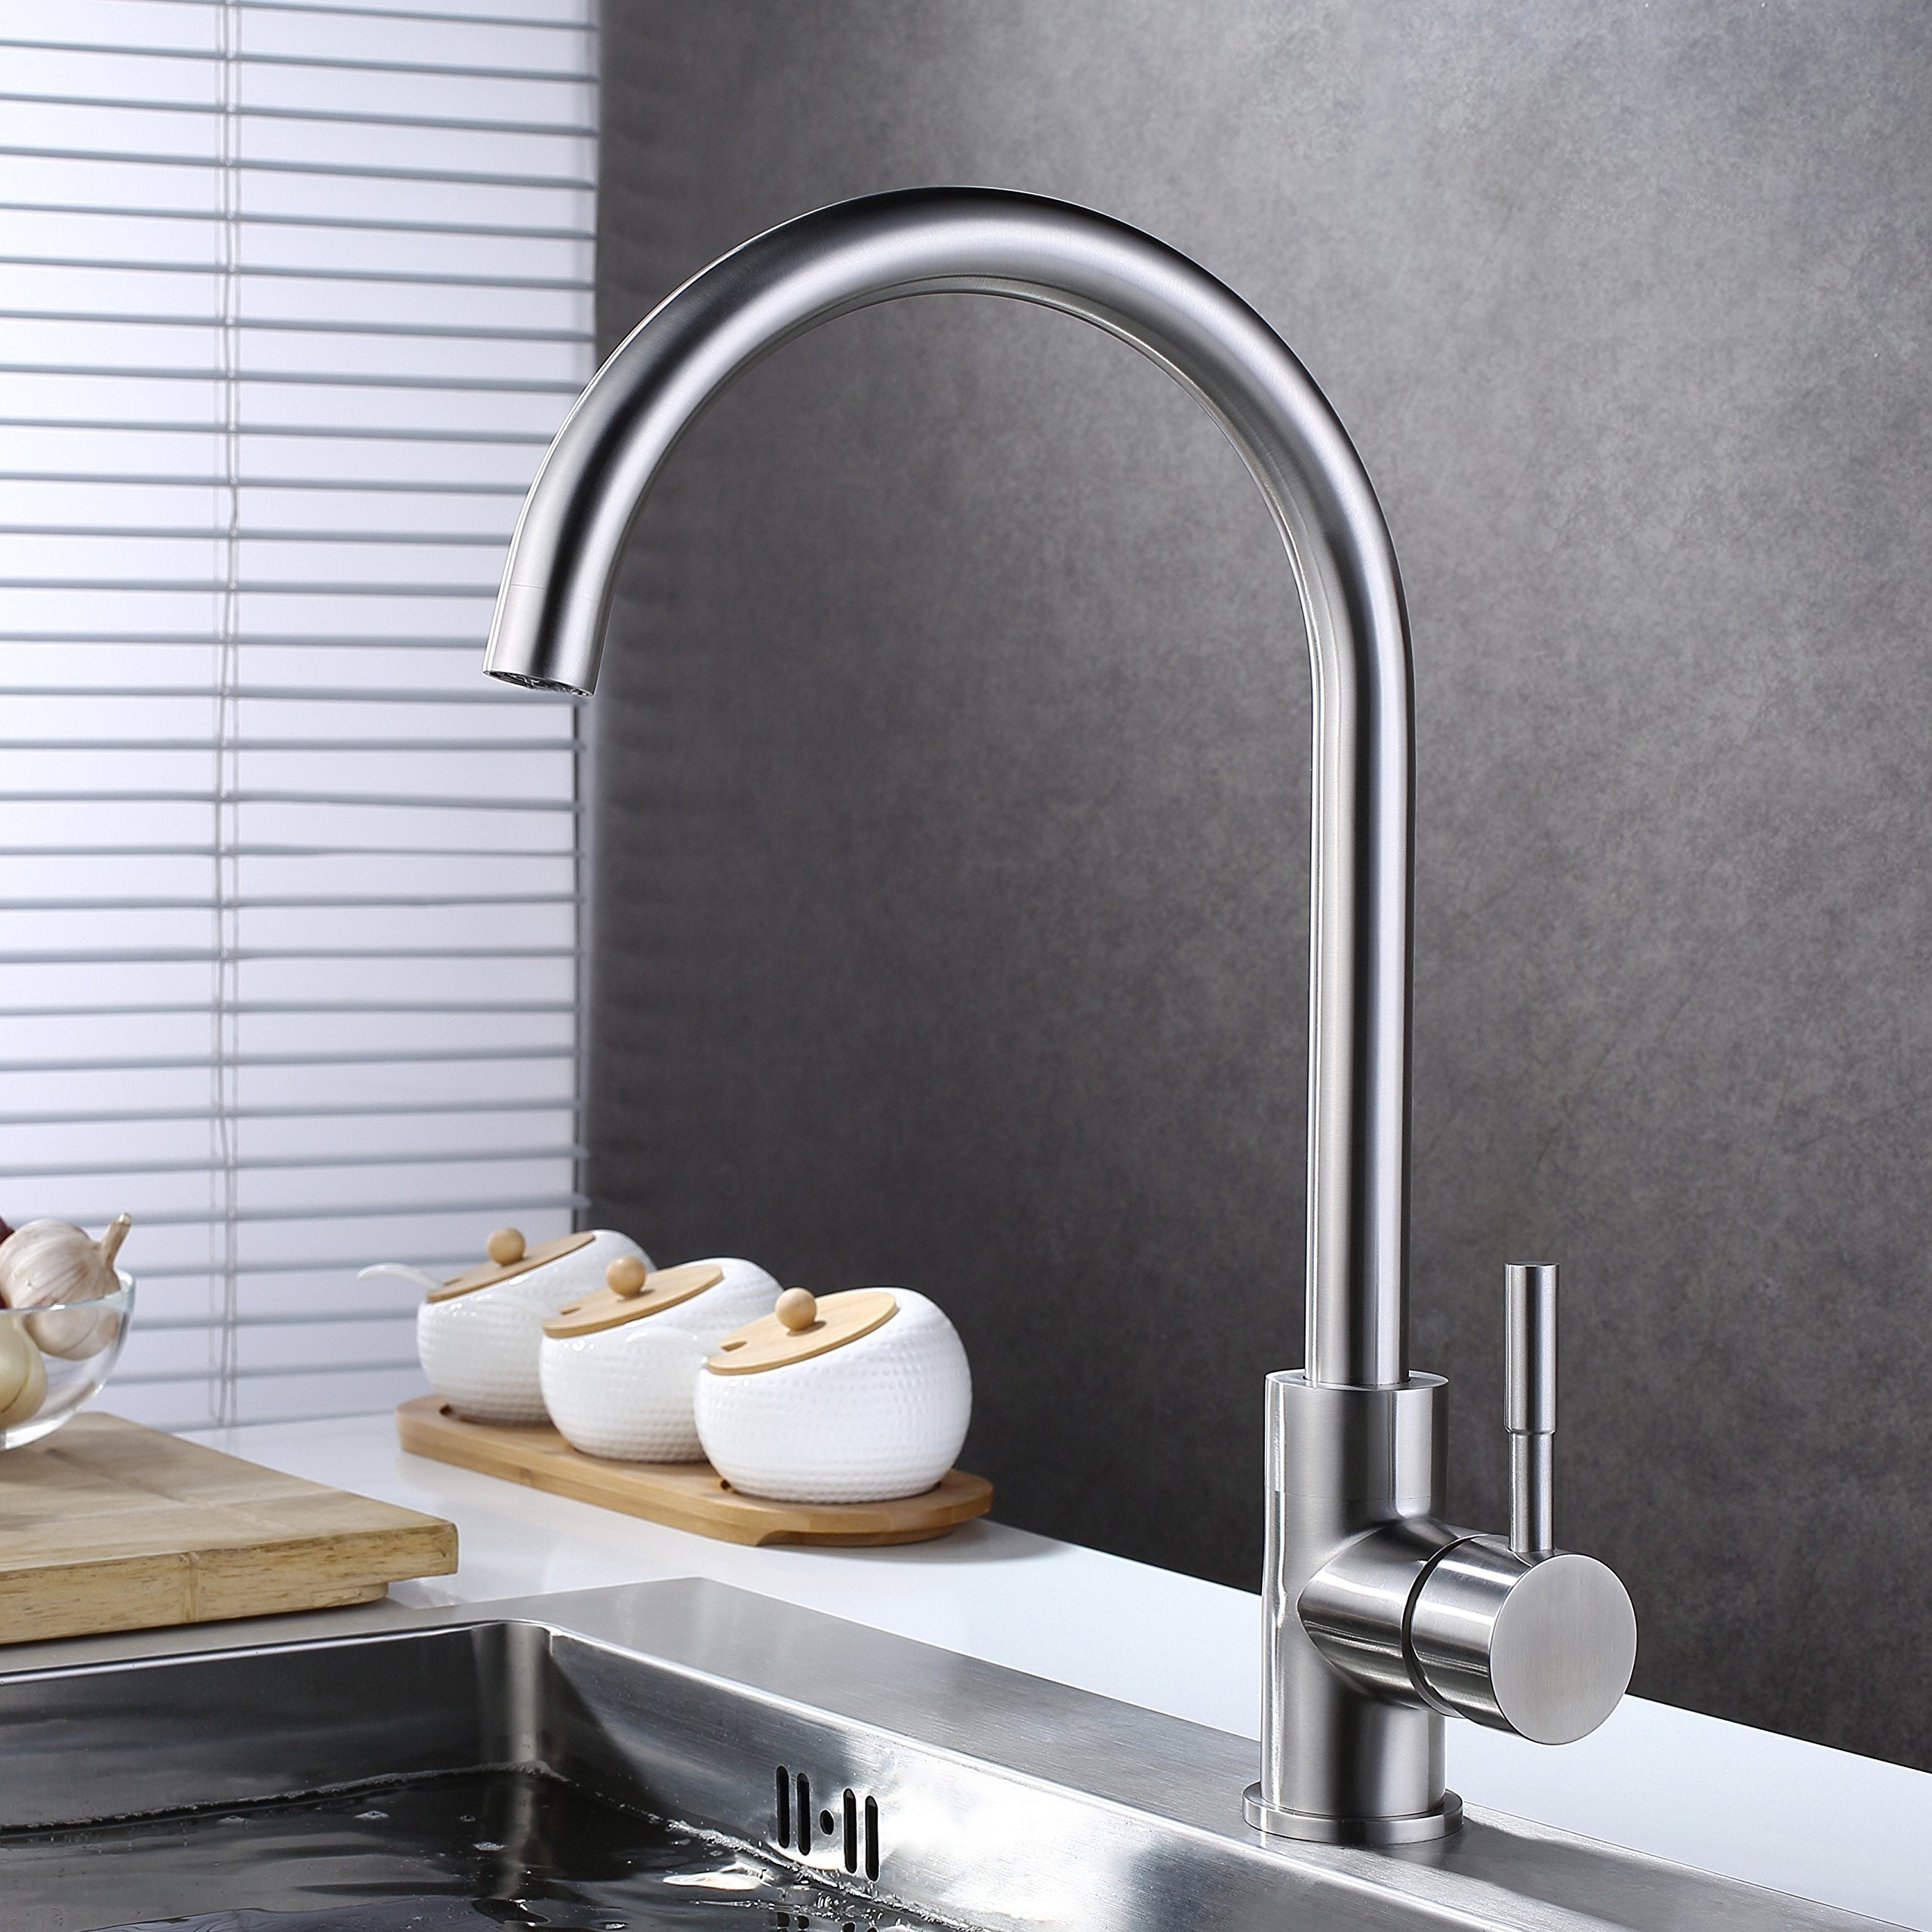 KAEN Single Handle Stainless Steel Kitchen Bar Prep Sink Faucet, Hot and Cold Mixer, Brushed Nickel